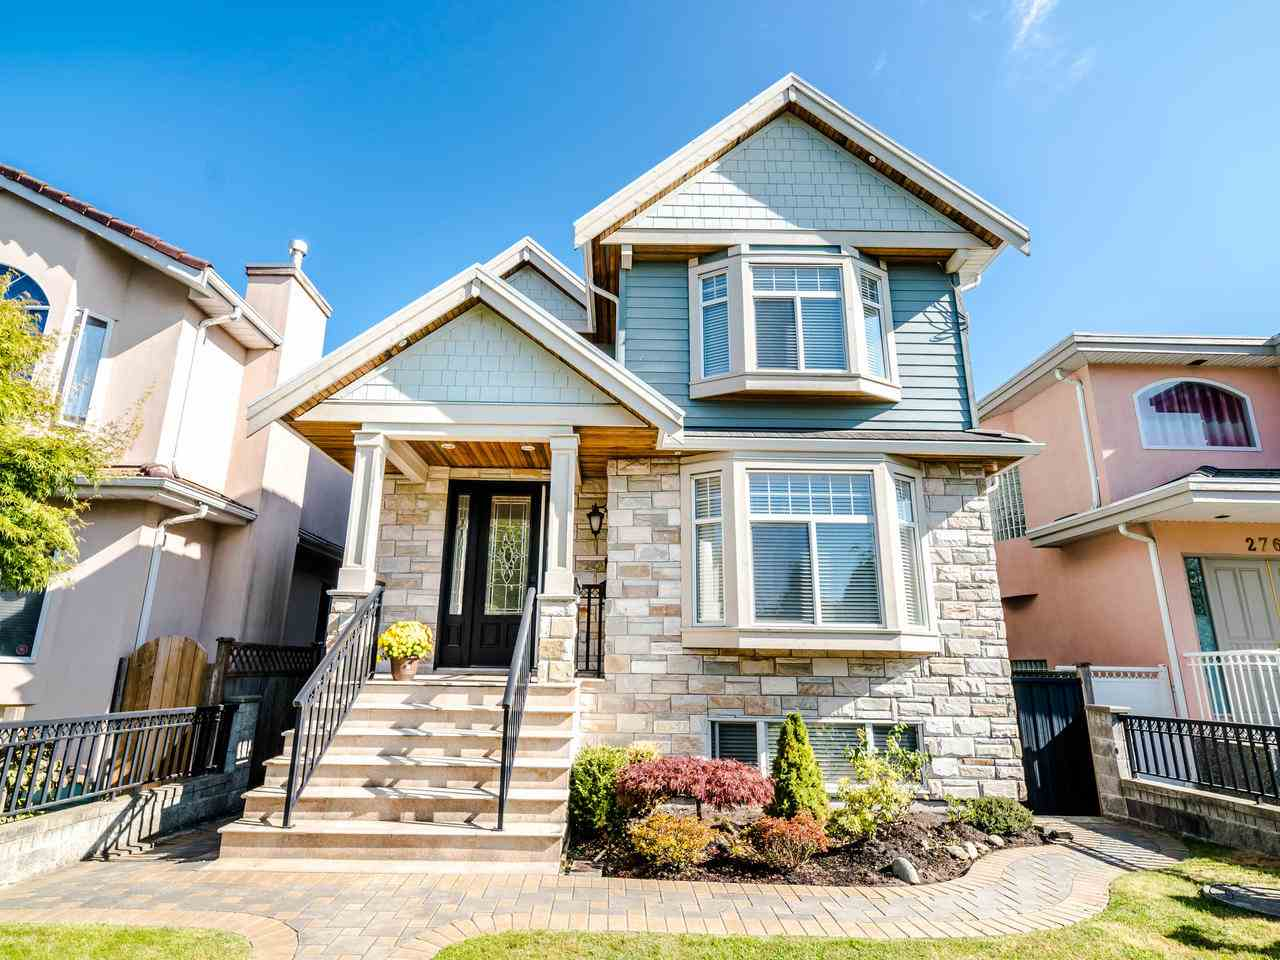 FEATURED LISTING: 2763 48TH Avenue East Vancouver